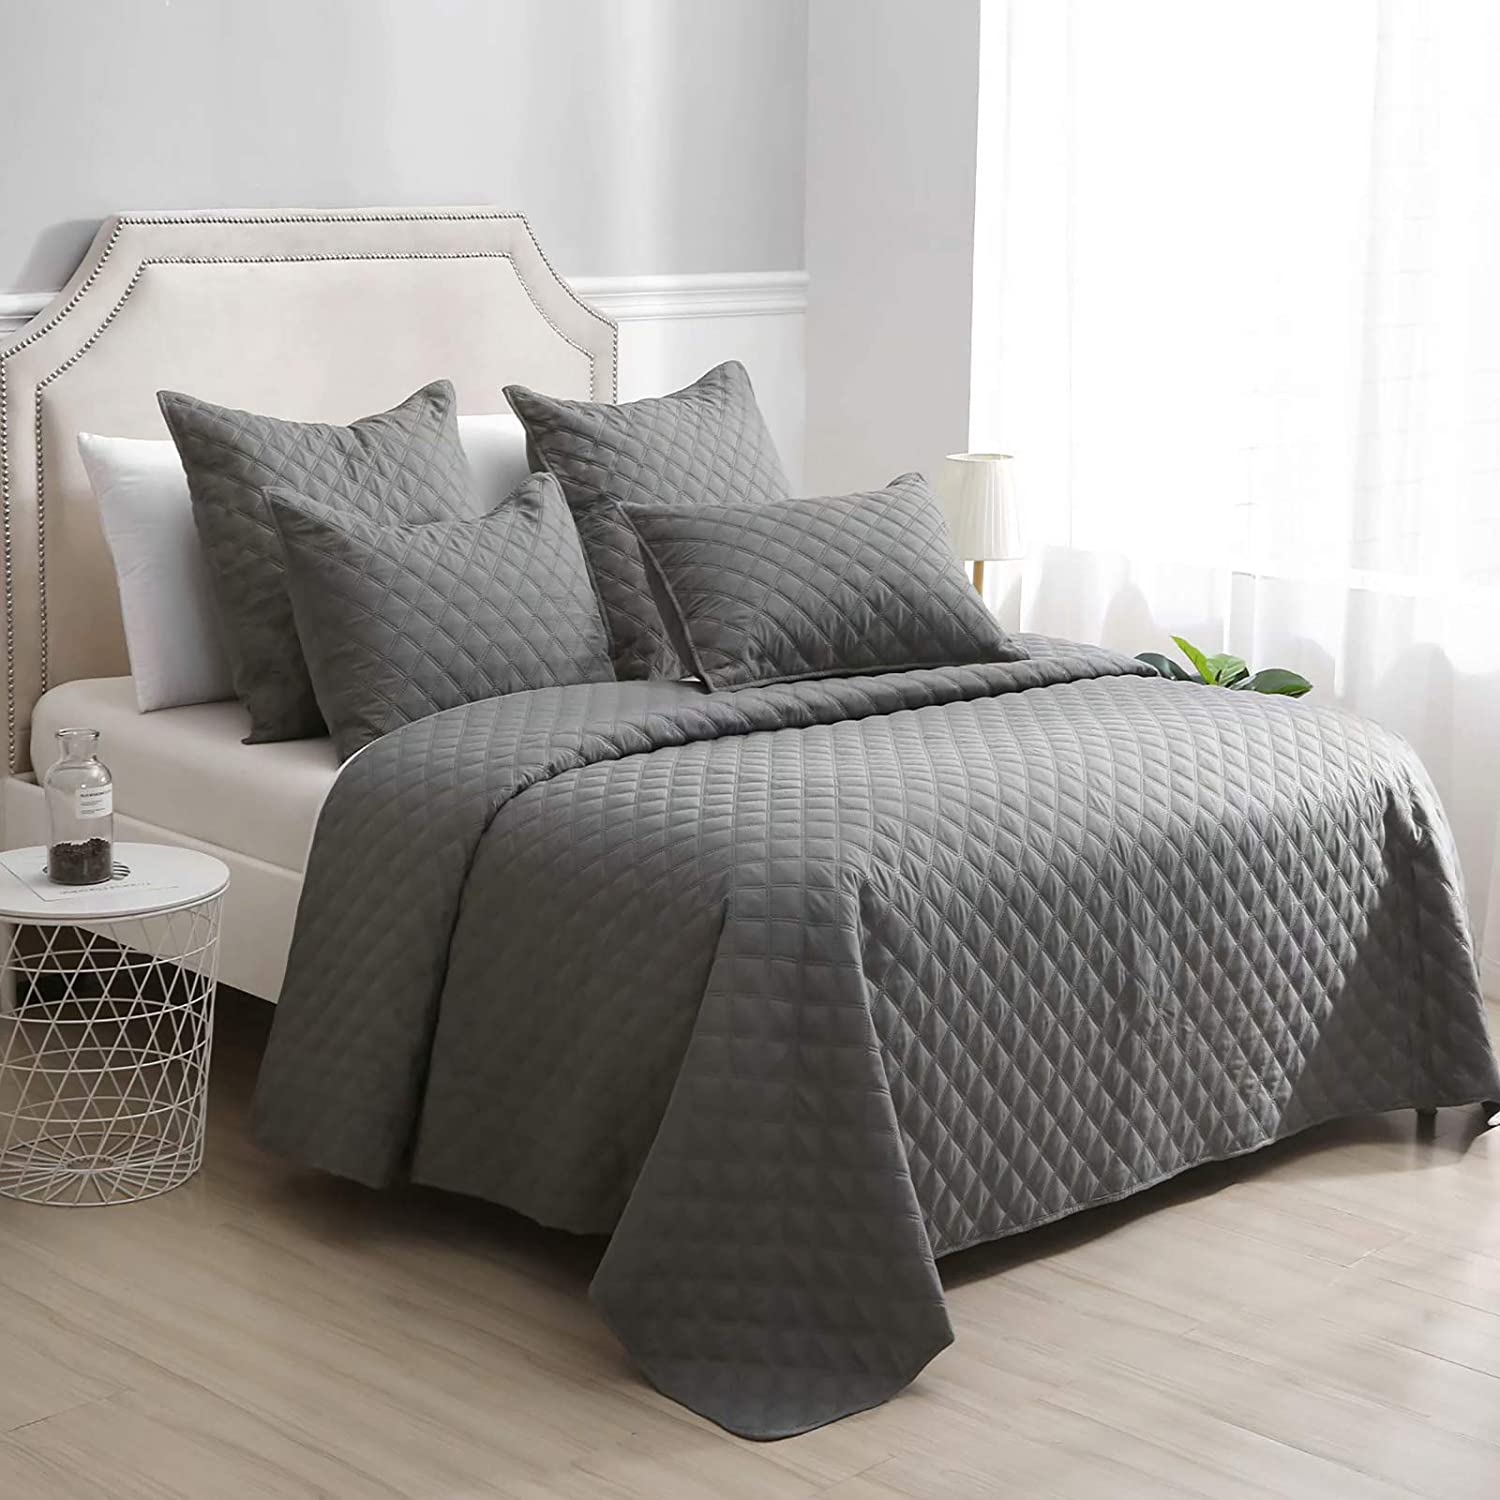 AiJar Home Slate Grey 3-Piece Full/Queen Size (68